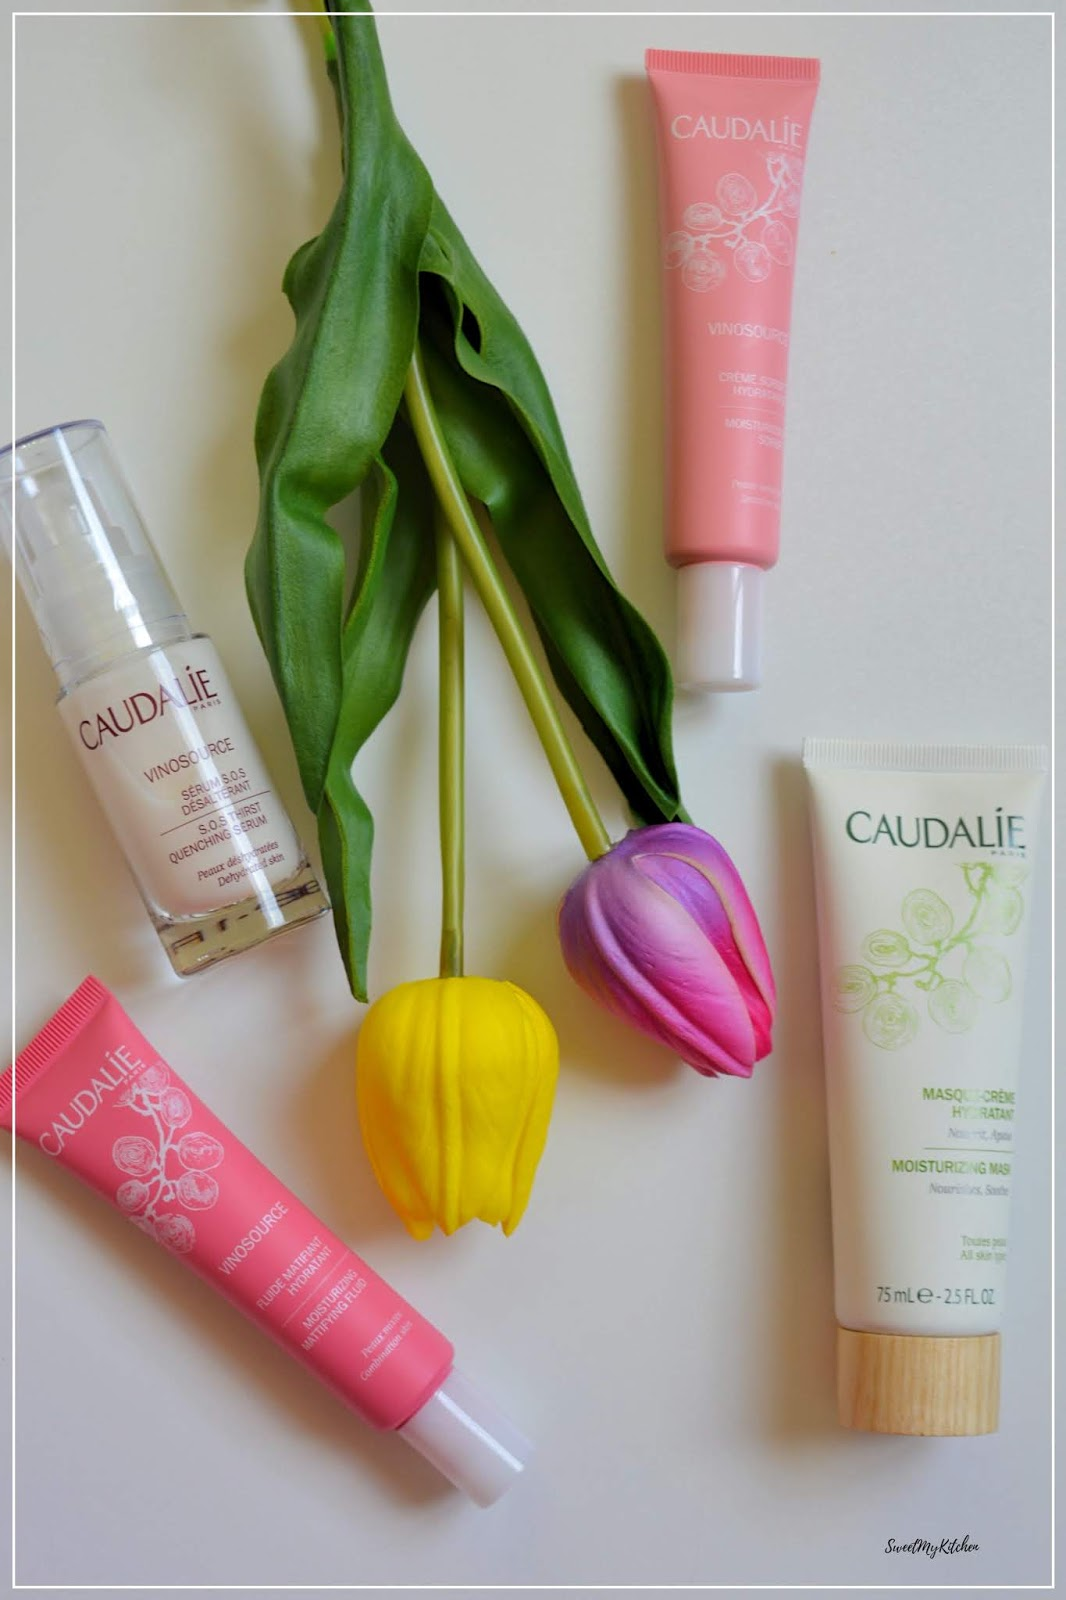 Caudalie skincare products review